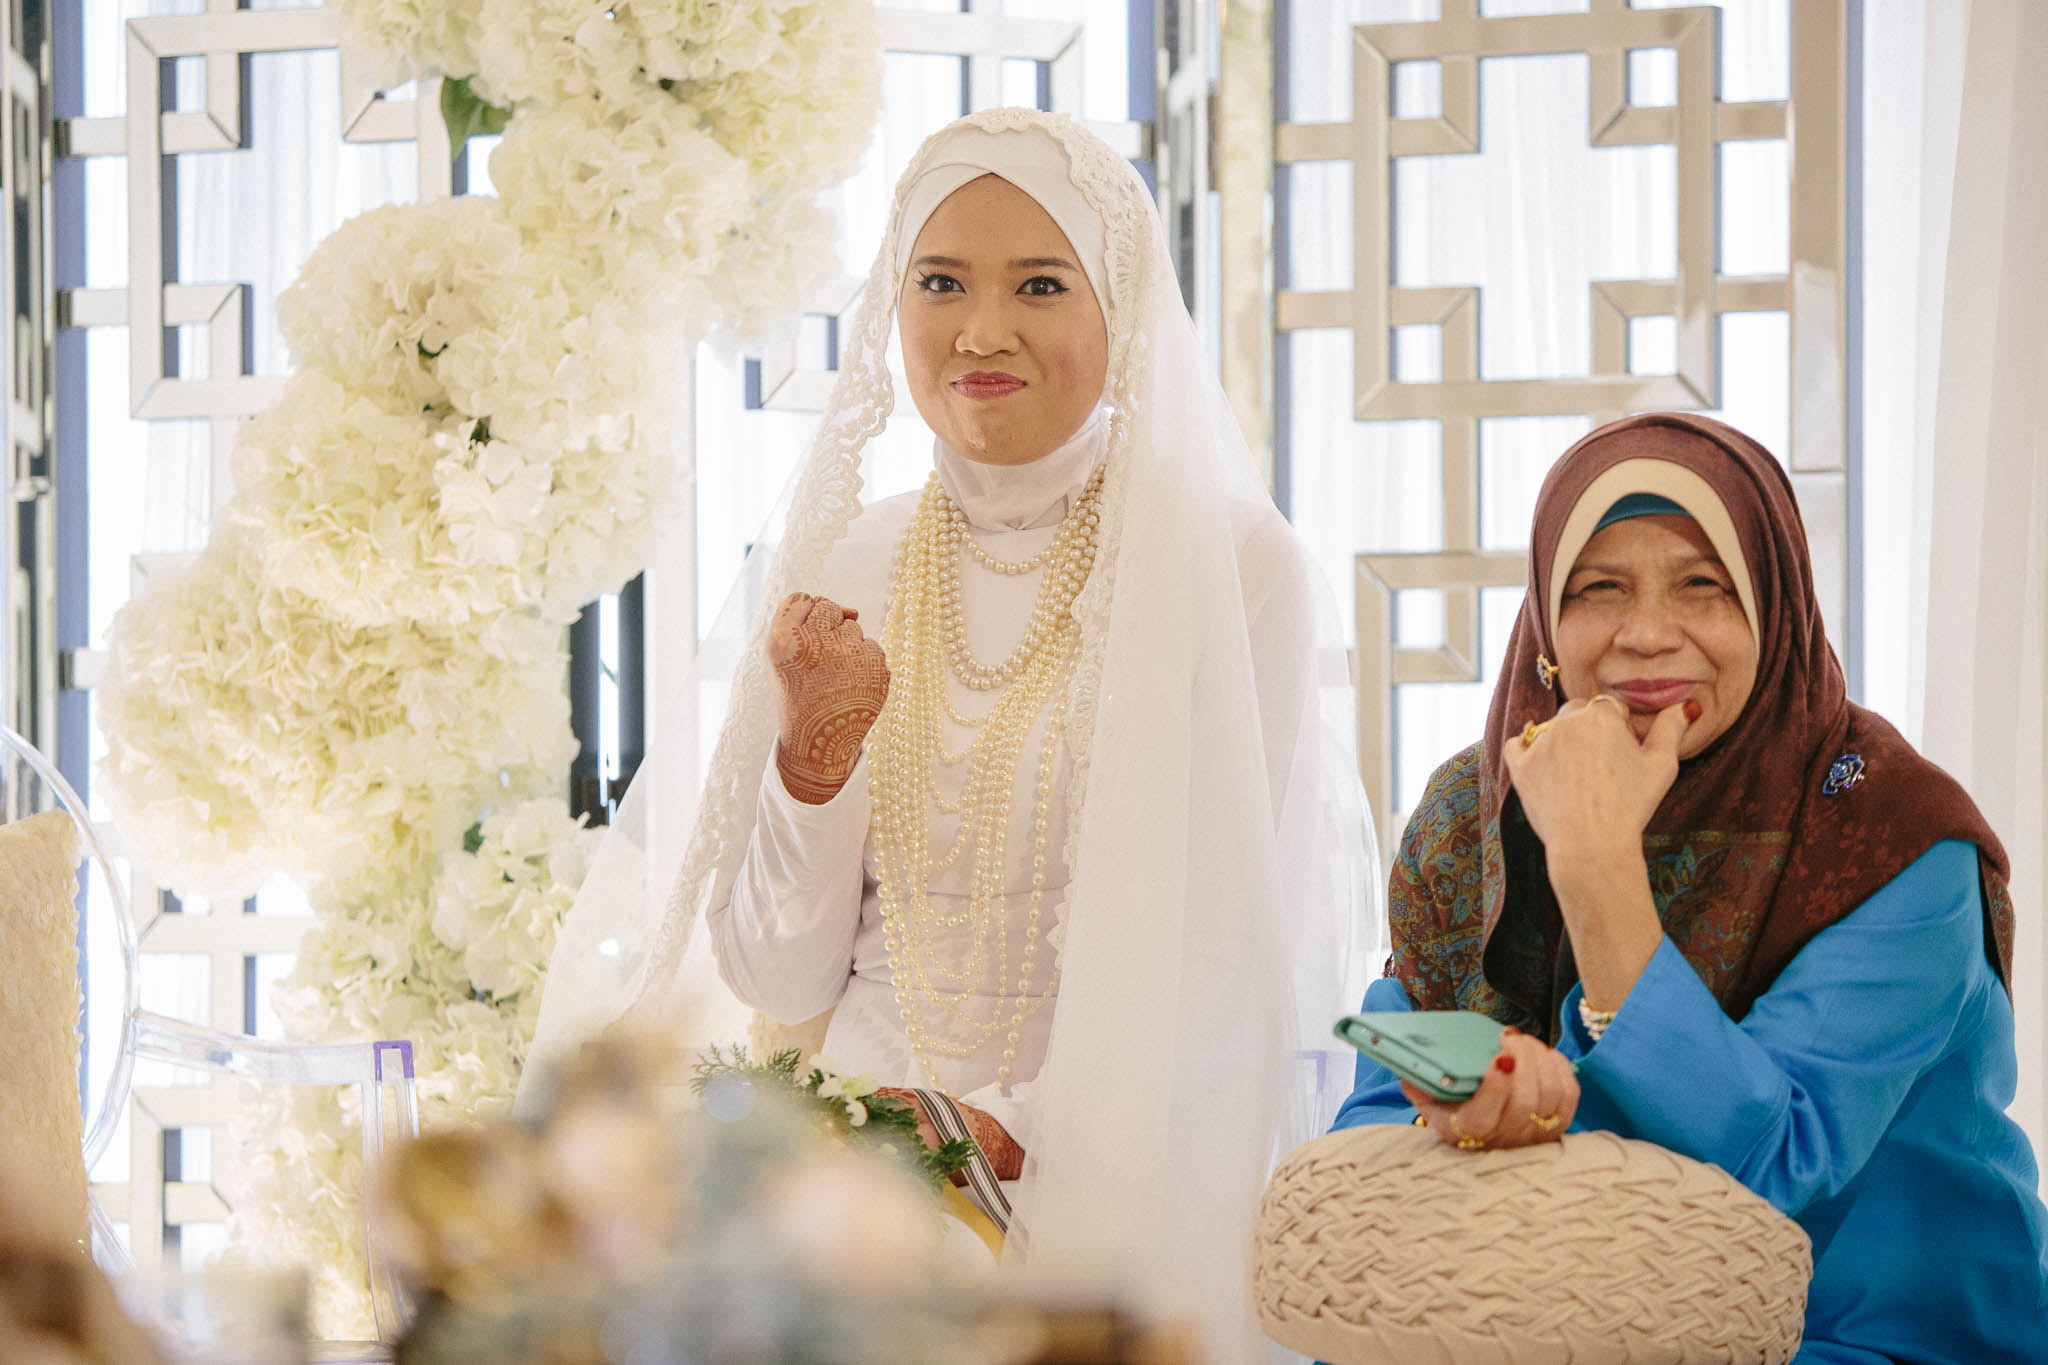 singapore-wedding-photographer-mega-asyraf-10.jpg